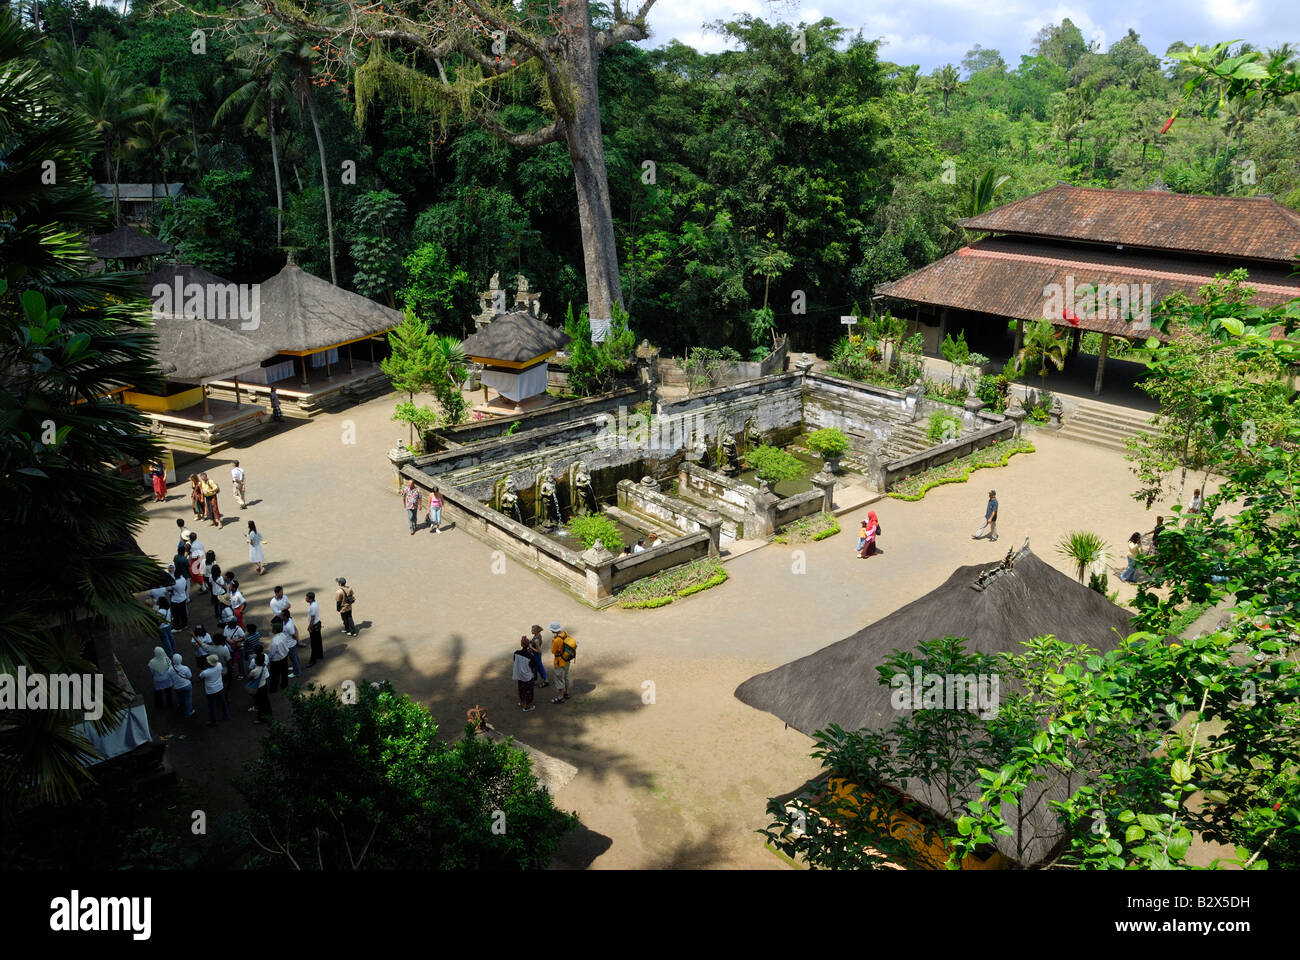 bathing place of the nymphs, ELEPHANT CAVE, Goa Gajah, Bali, Indonesia, Asia - Stock Image